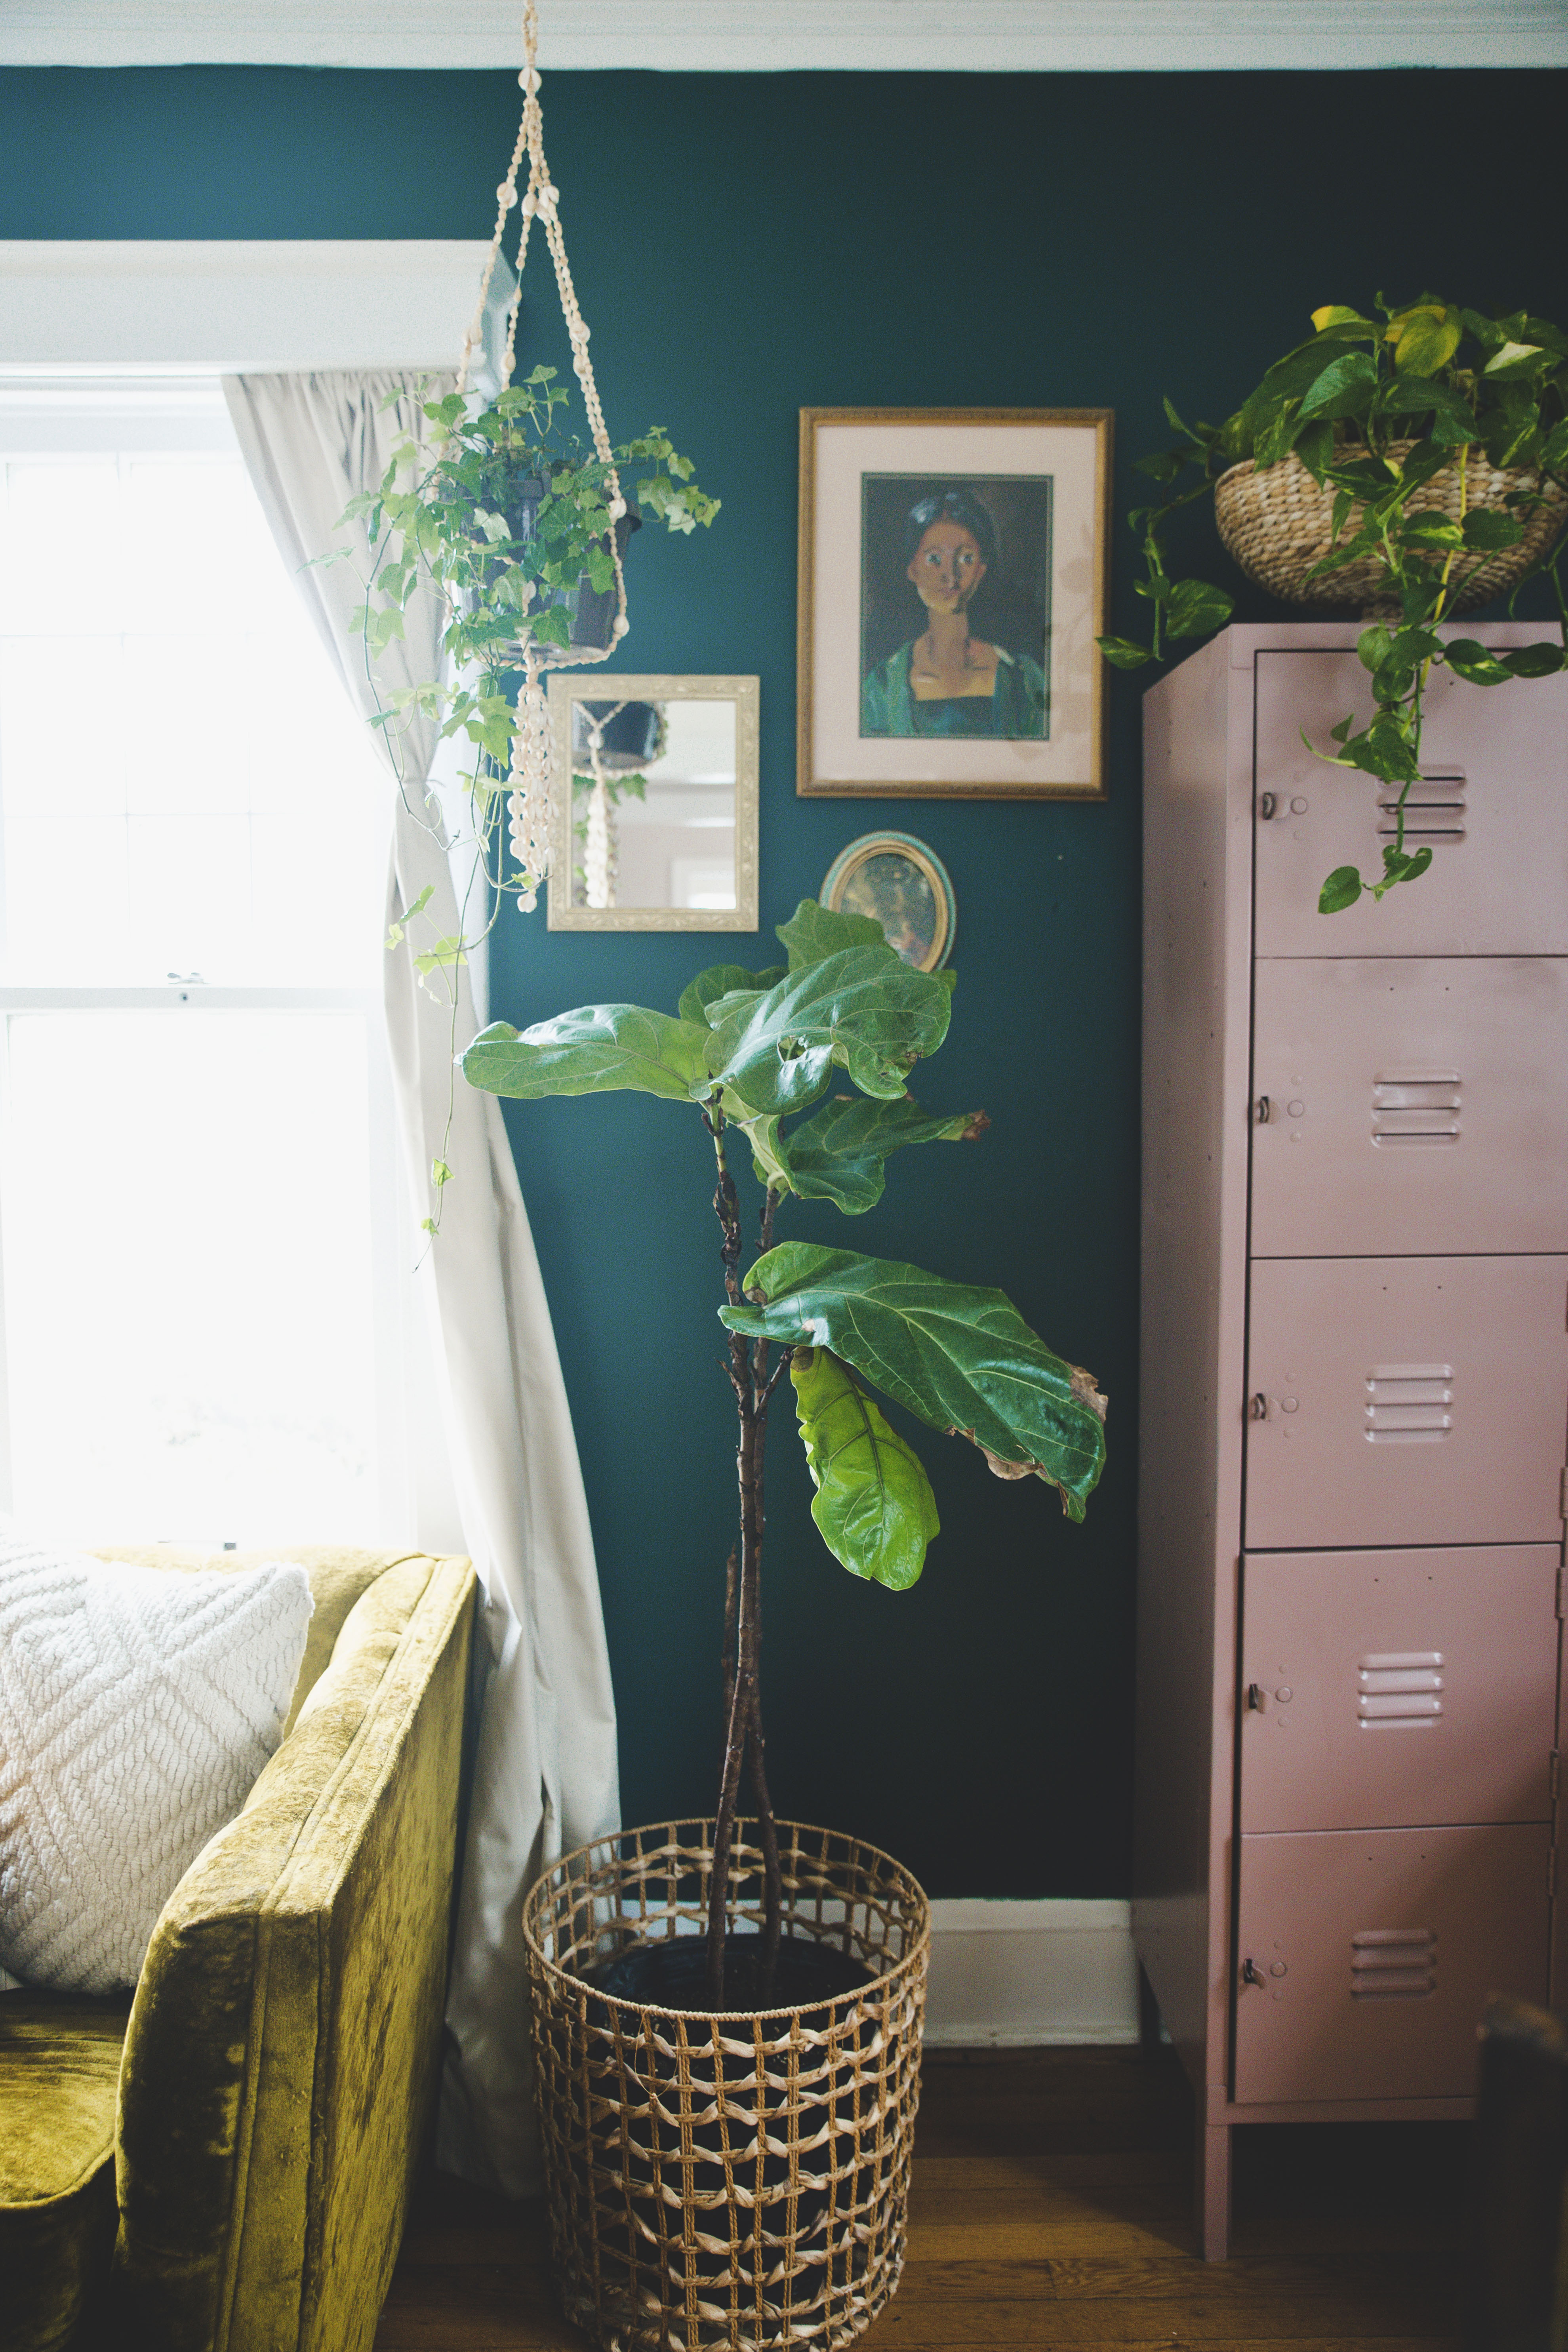 Lauren Noel's Home Tour for Design*Sponge